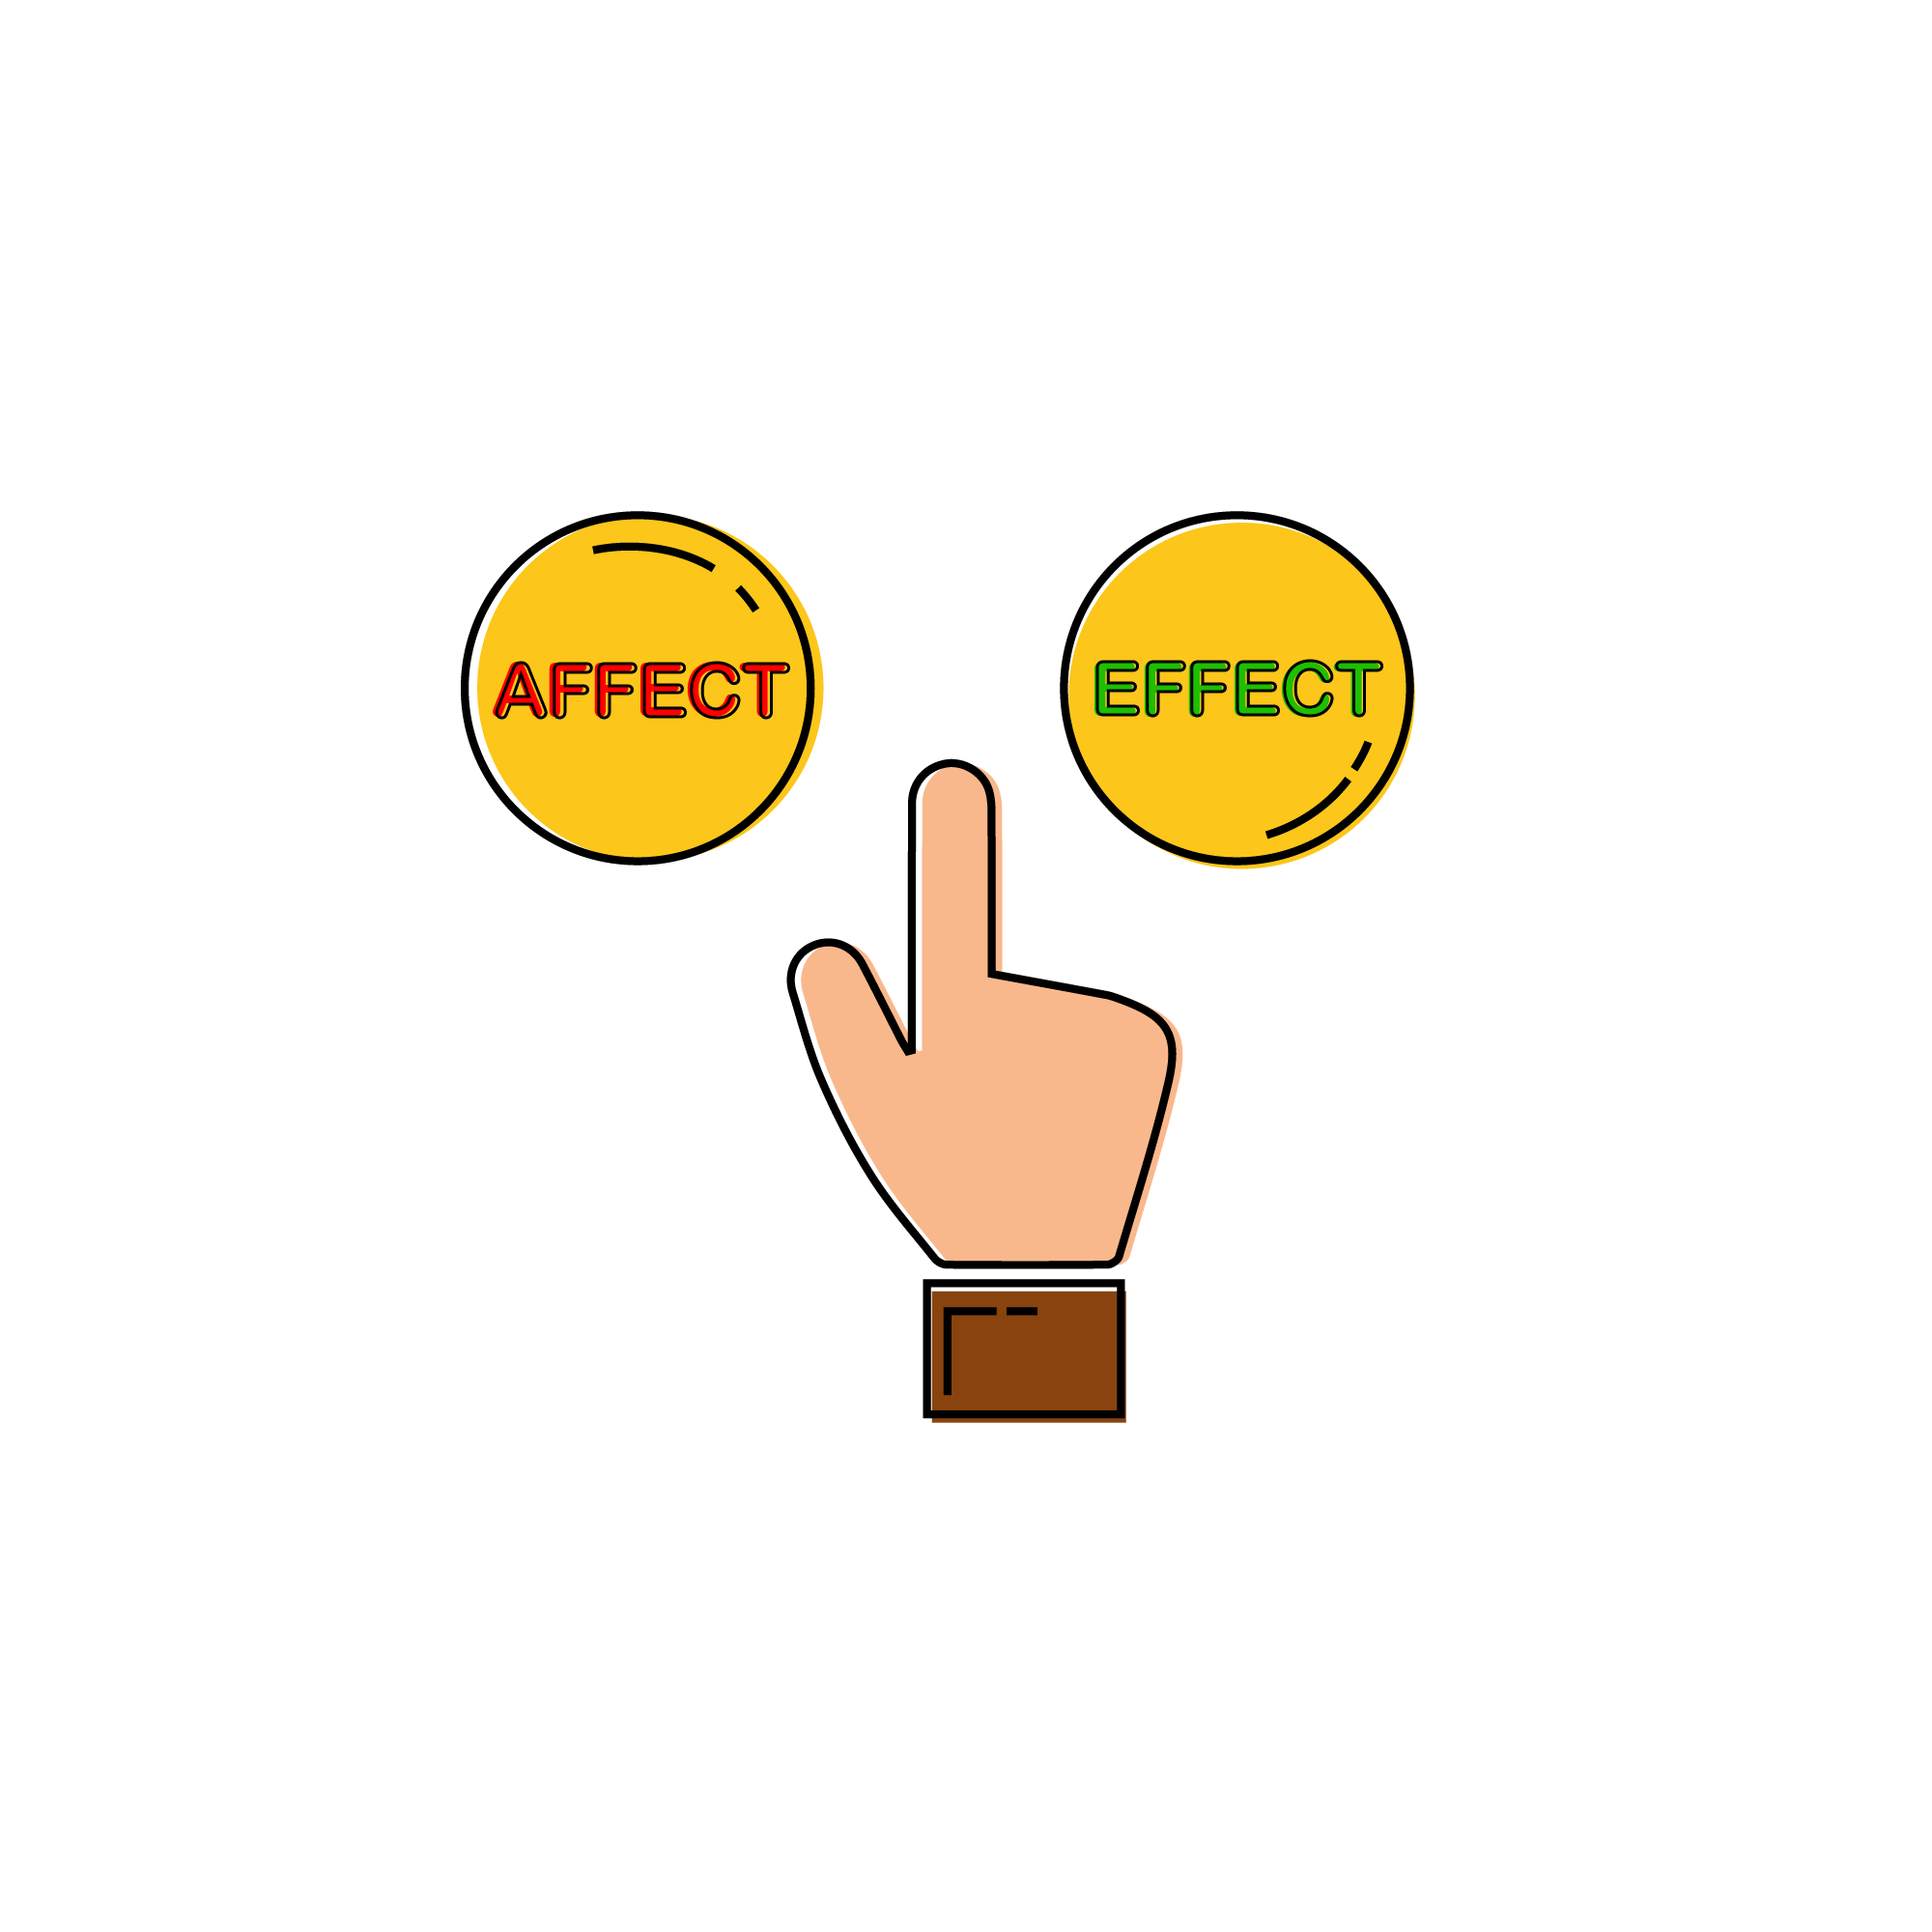 Concision works on one very basic principle: it is incorrect to use 10 words to express an idea you could express using 5.